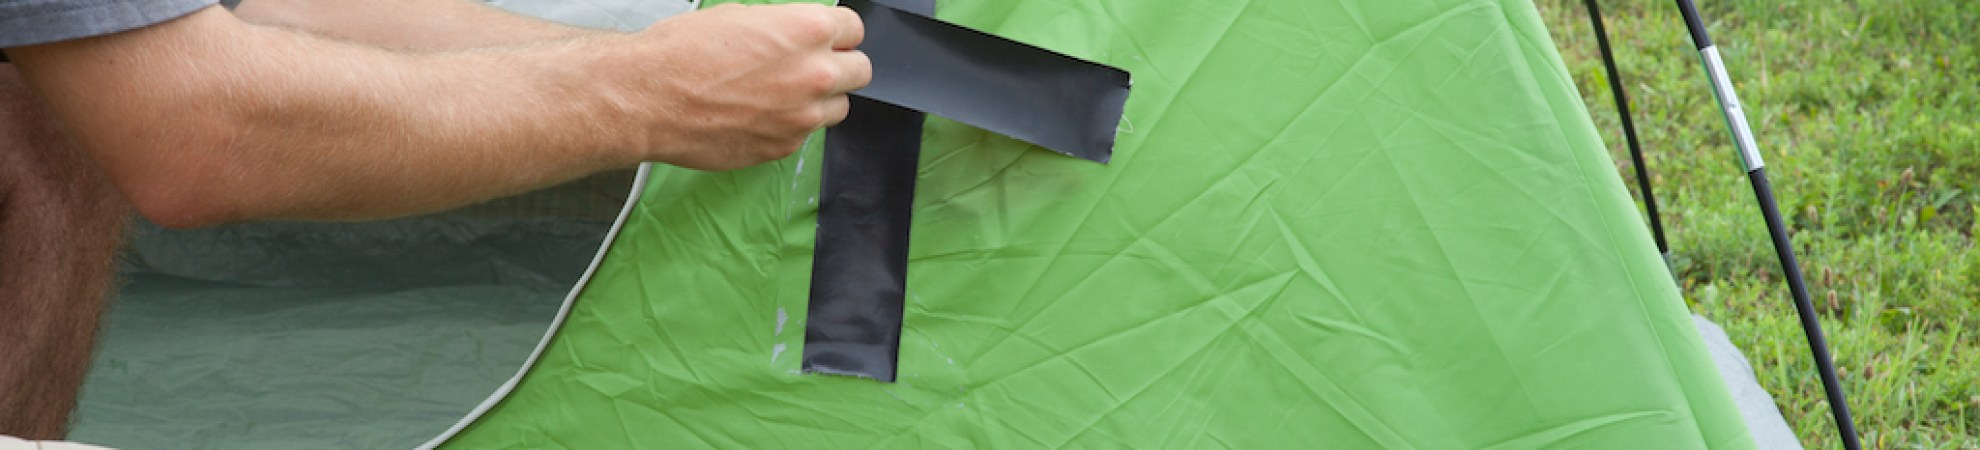 gaffer tape uses outdoors